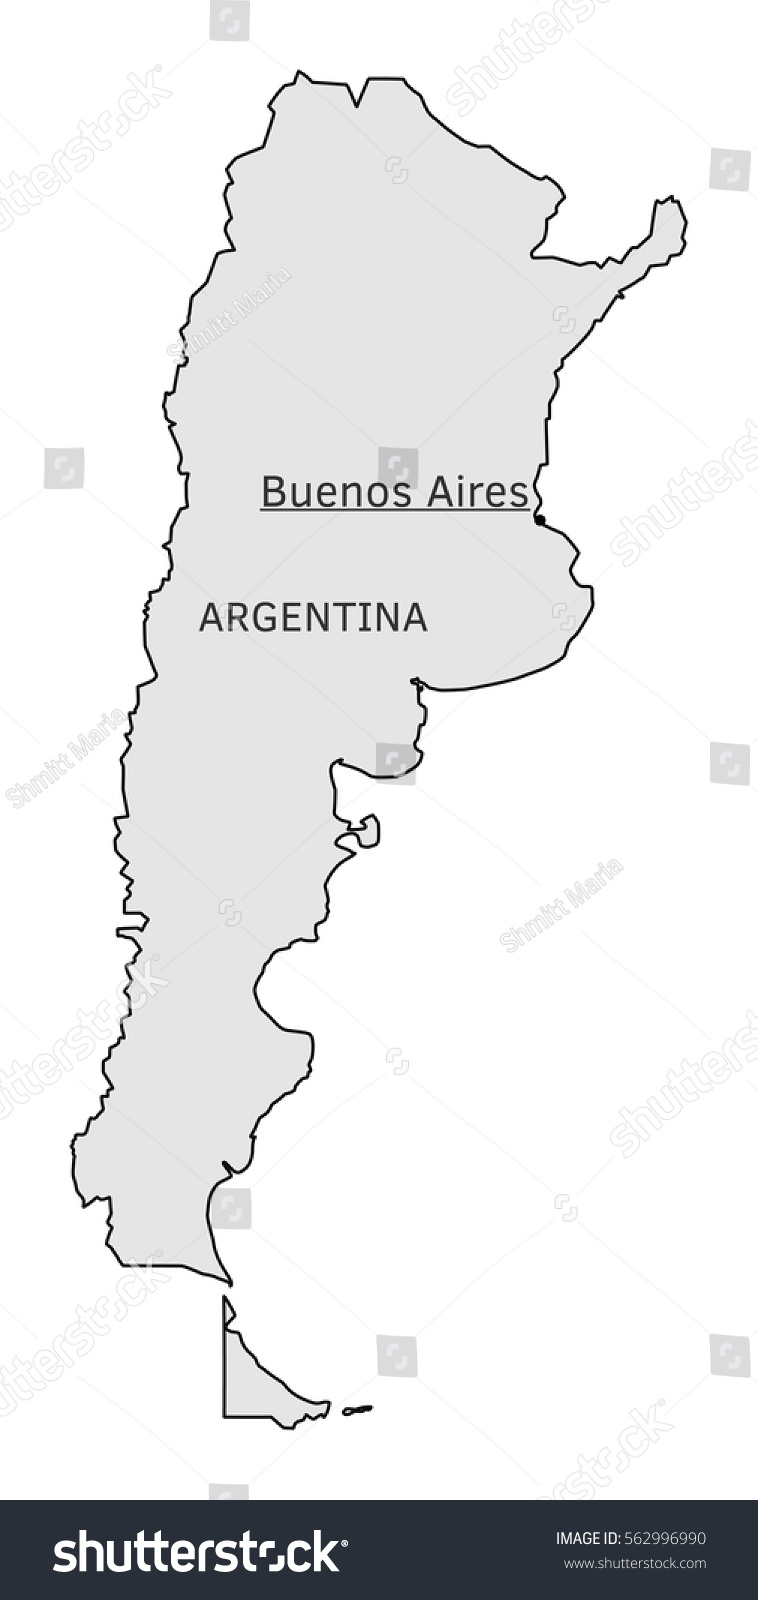 Argentina Silhouette Map Buenos Aires Capital Stock Vector - Argentina map vector free